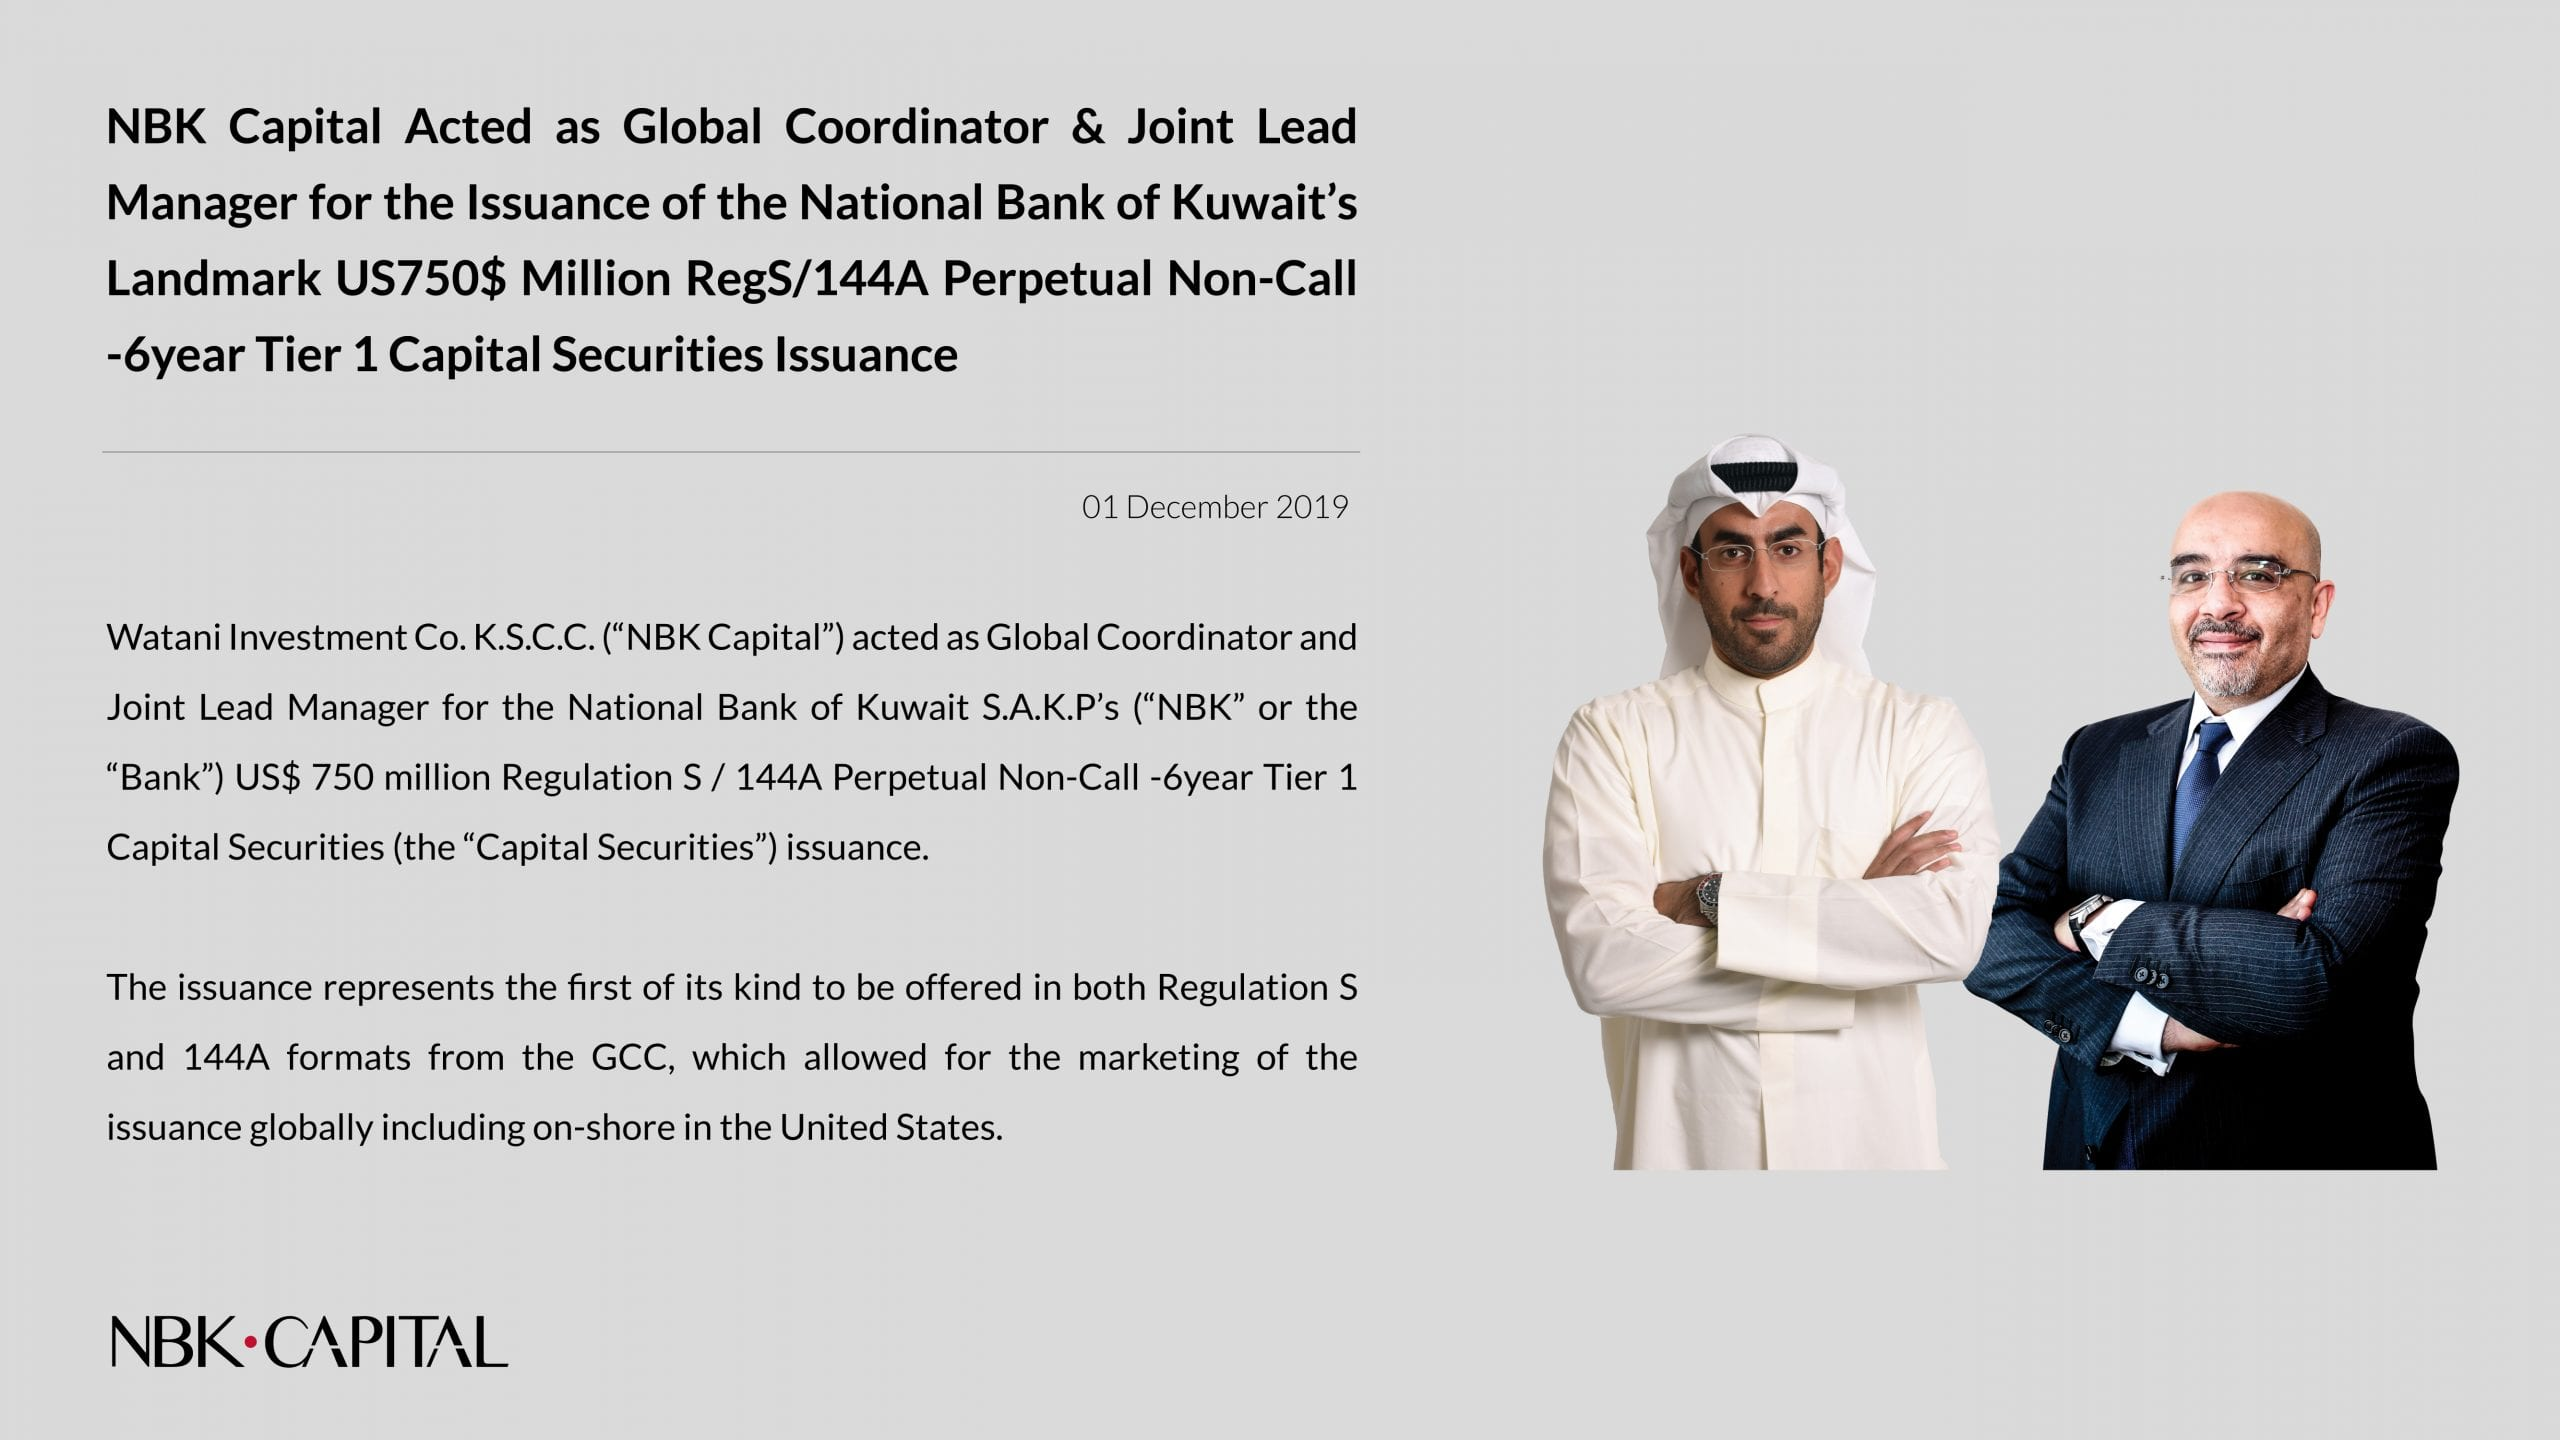 NBK Capital Acts as Global Coordinator and JLM for NBK Issuance